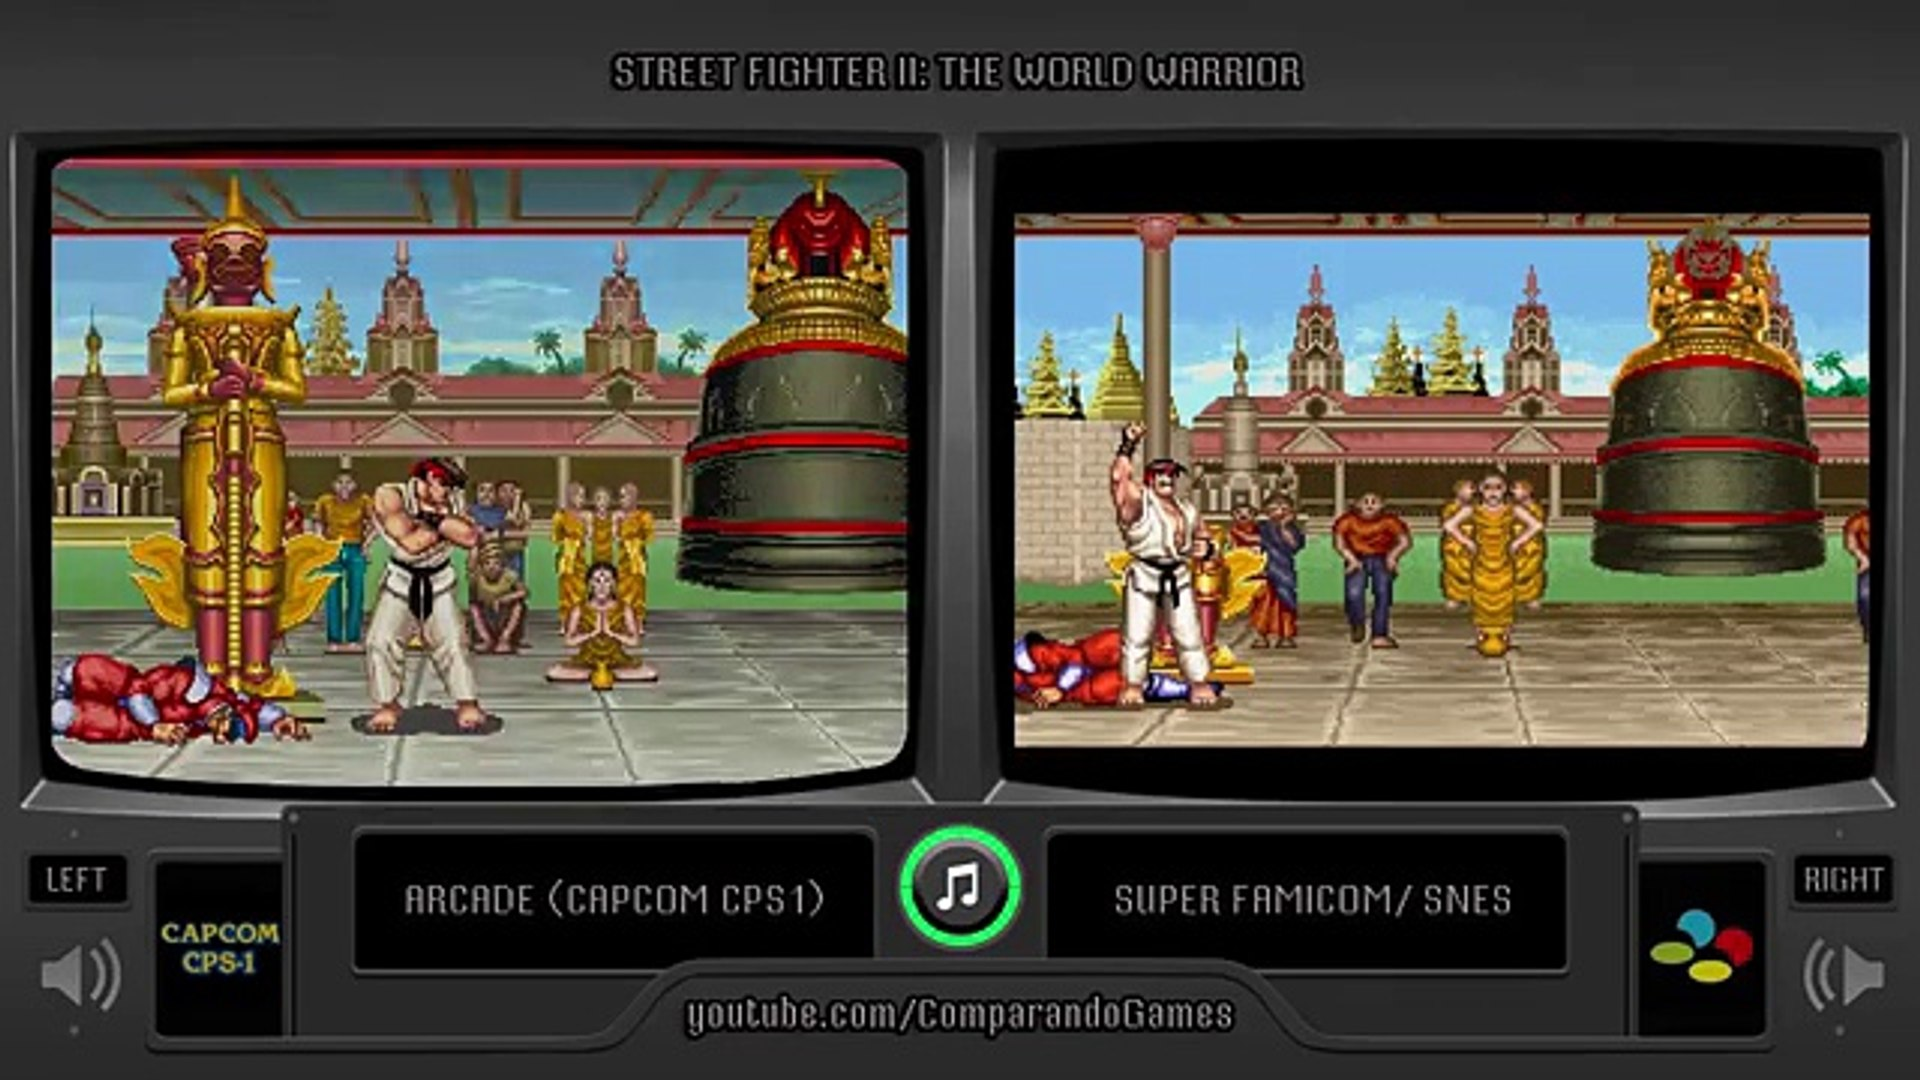 Street Fighter Ii Arcade Vs Snes All Endings Comparison Video Dailymotion